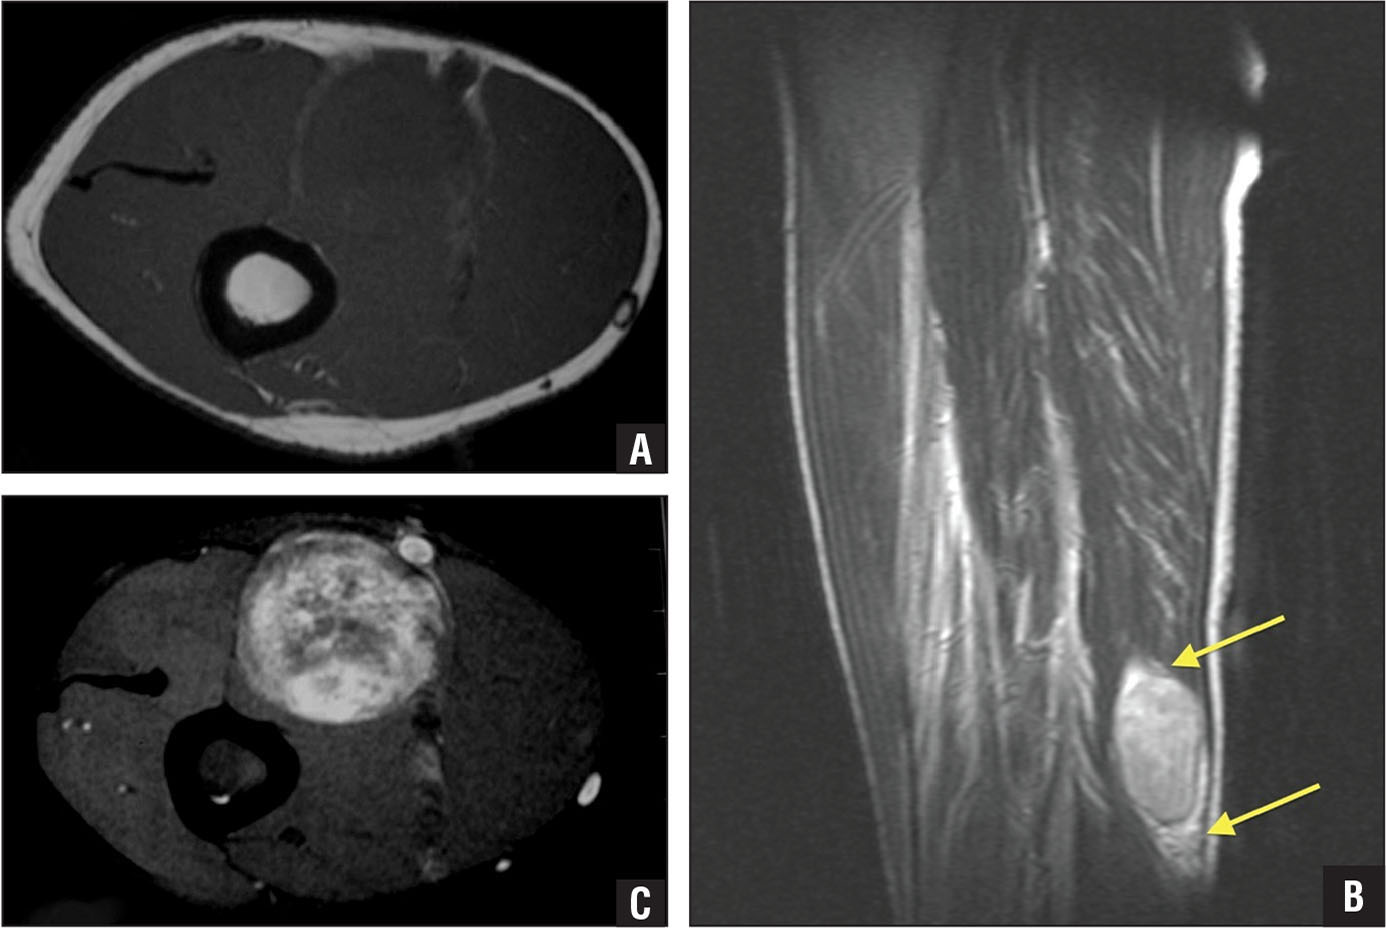 Preoperative axial T1-weighted magnetic resonance image of a schwannoma displaying a split fat sign and intermediate intensity (A). Preoperative sagittal T2-weighted turbo spin-echo magnetic resonance image of a schwannoma displaying a split fat sign. The 2 arrows indicate the fat at the upper and lower poles of the lesion (B). Preoperative axial T2-weighted magnetic resonance image displaying a schwannoma with heterogeneous appearance typical of most schwannomas in this study. The mass is predominantly hyperintense (Antoni B) with scattered hypointense (Antoni A) areas (C).